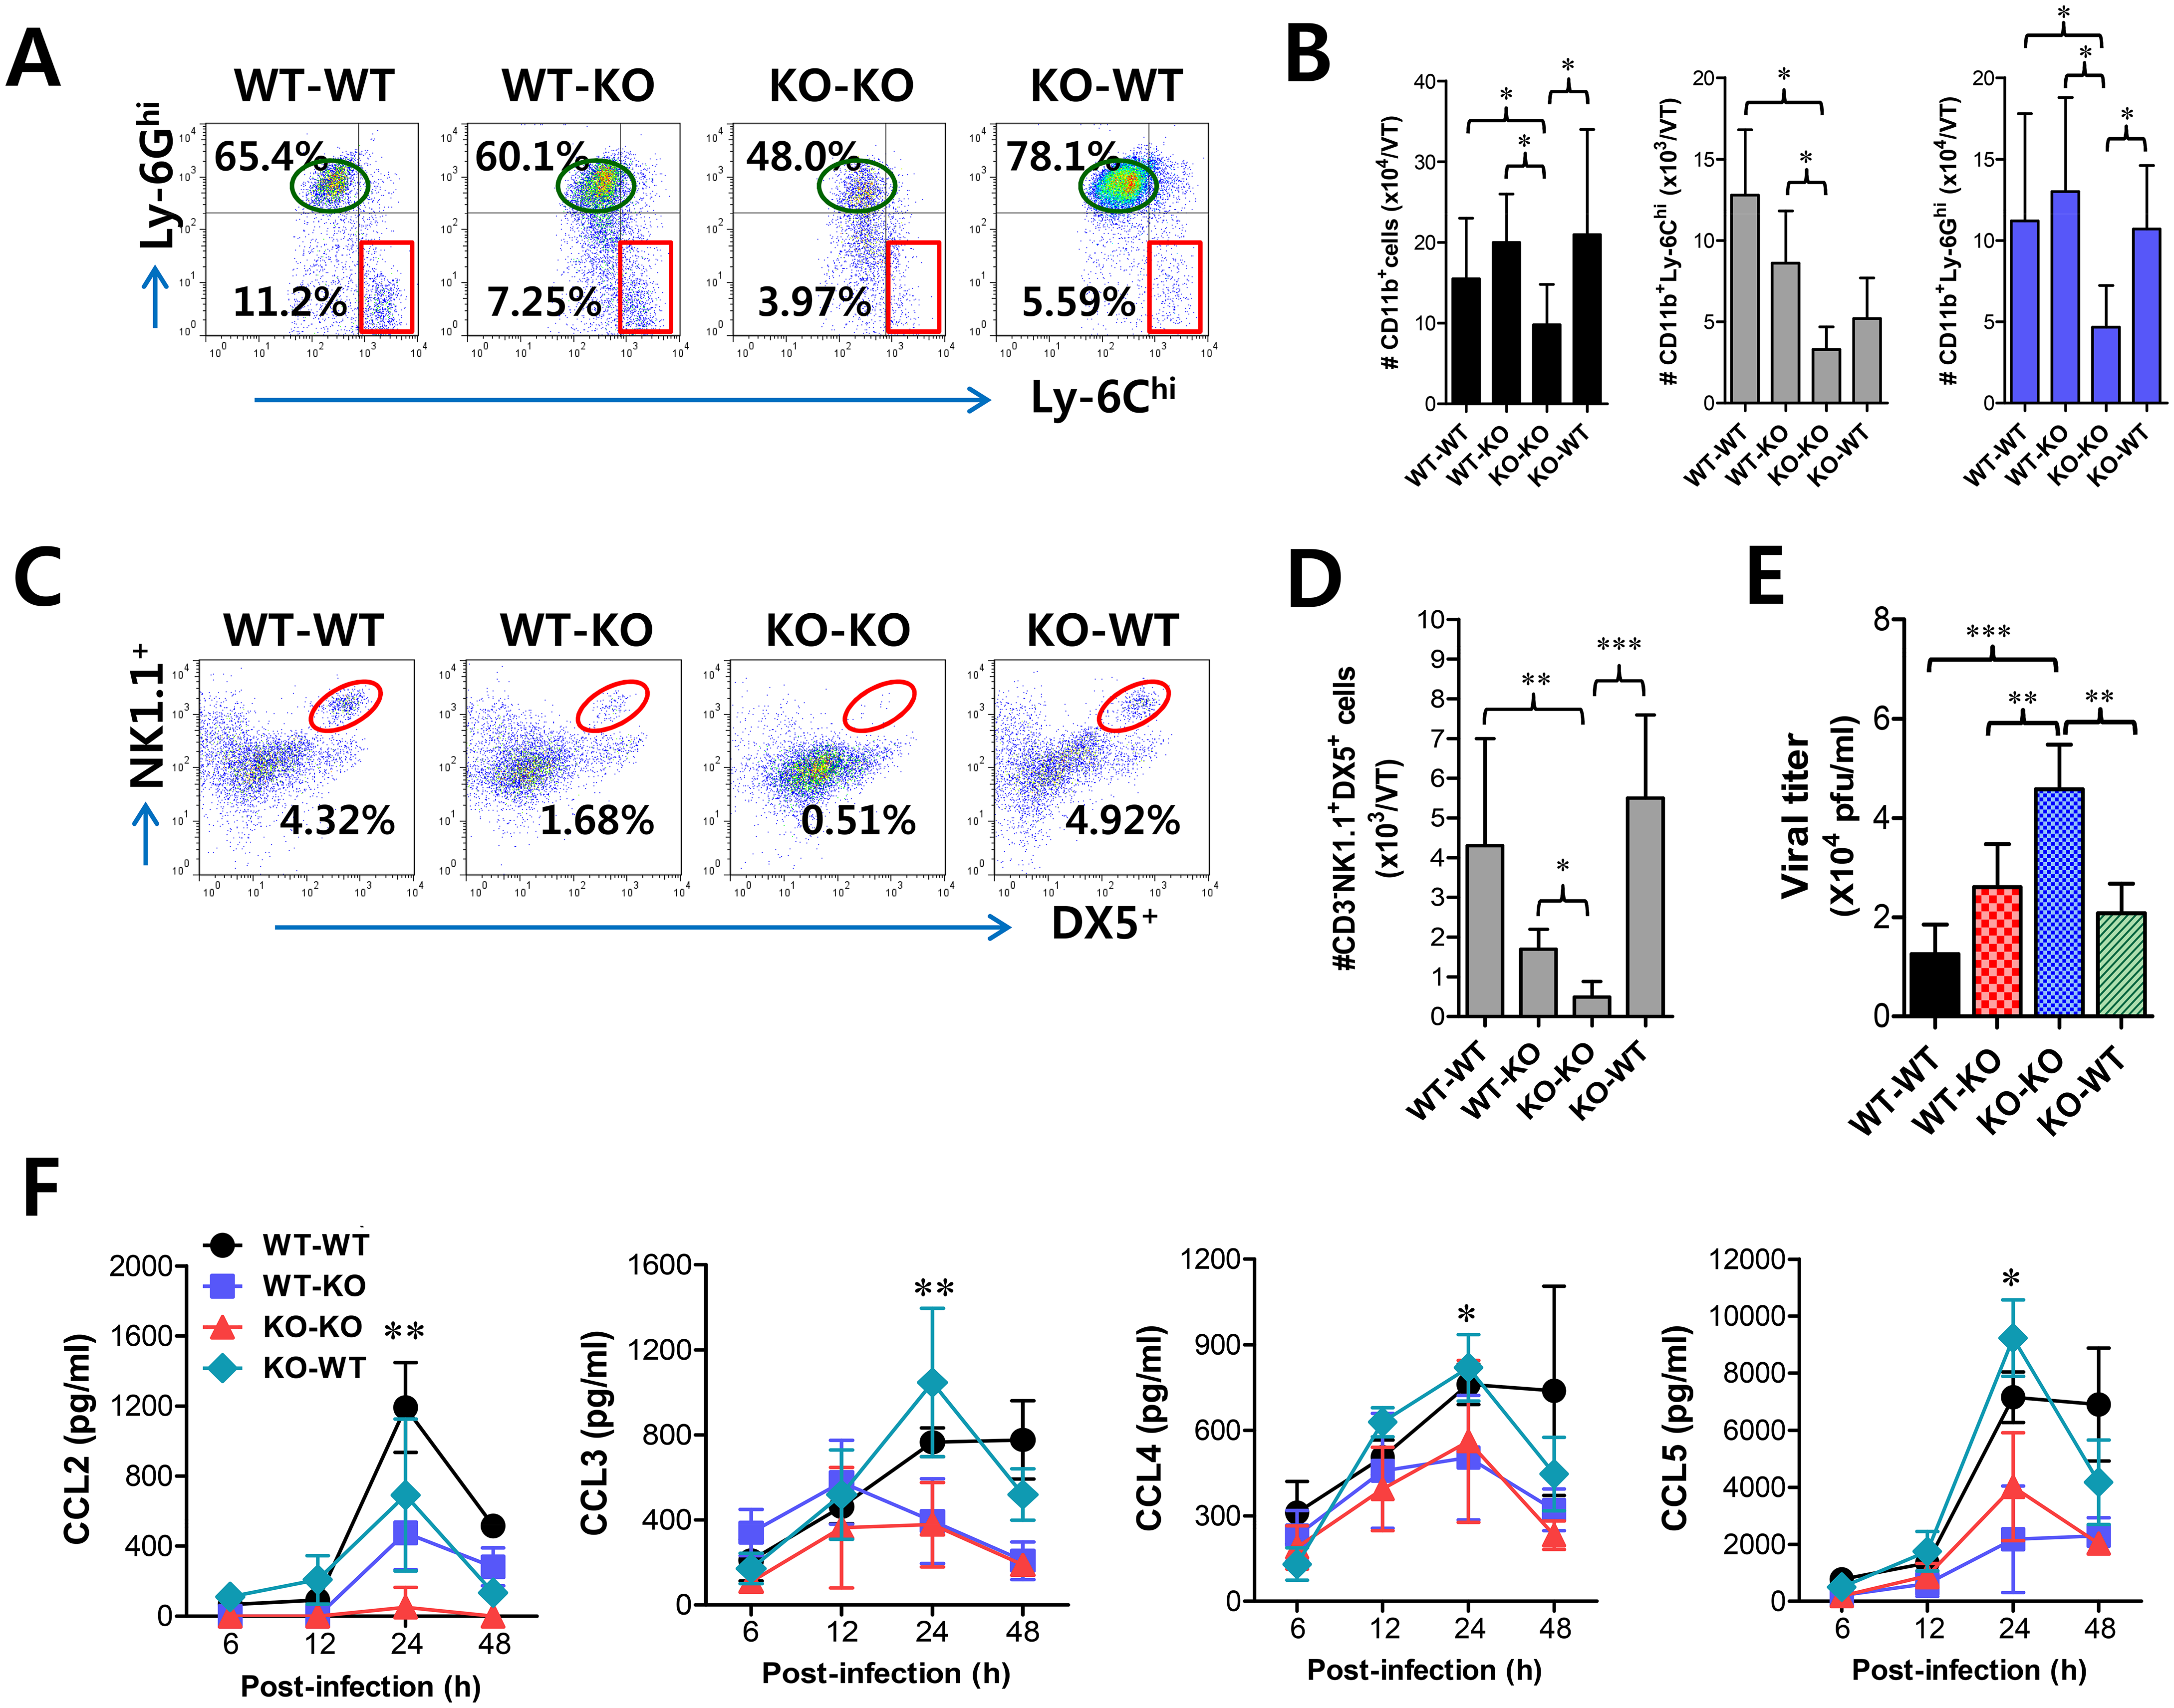 CCL2 produced from infiltrated leukocytes derived from HSC lineage plays a dominant role in mucosal recruitment of CD11b<sup>+</sup>Ly-6C<sup>hi</sup> monocytes.